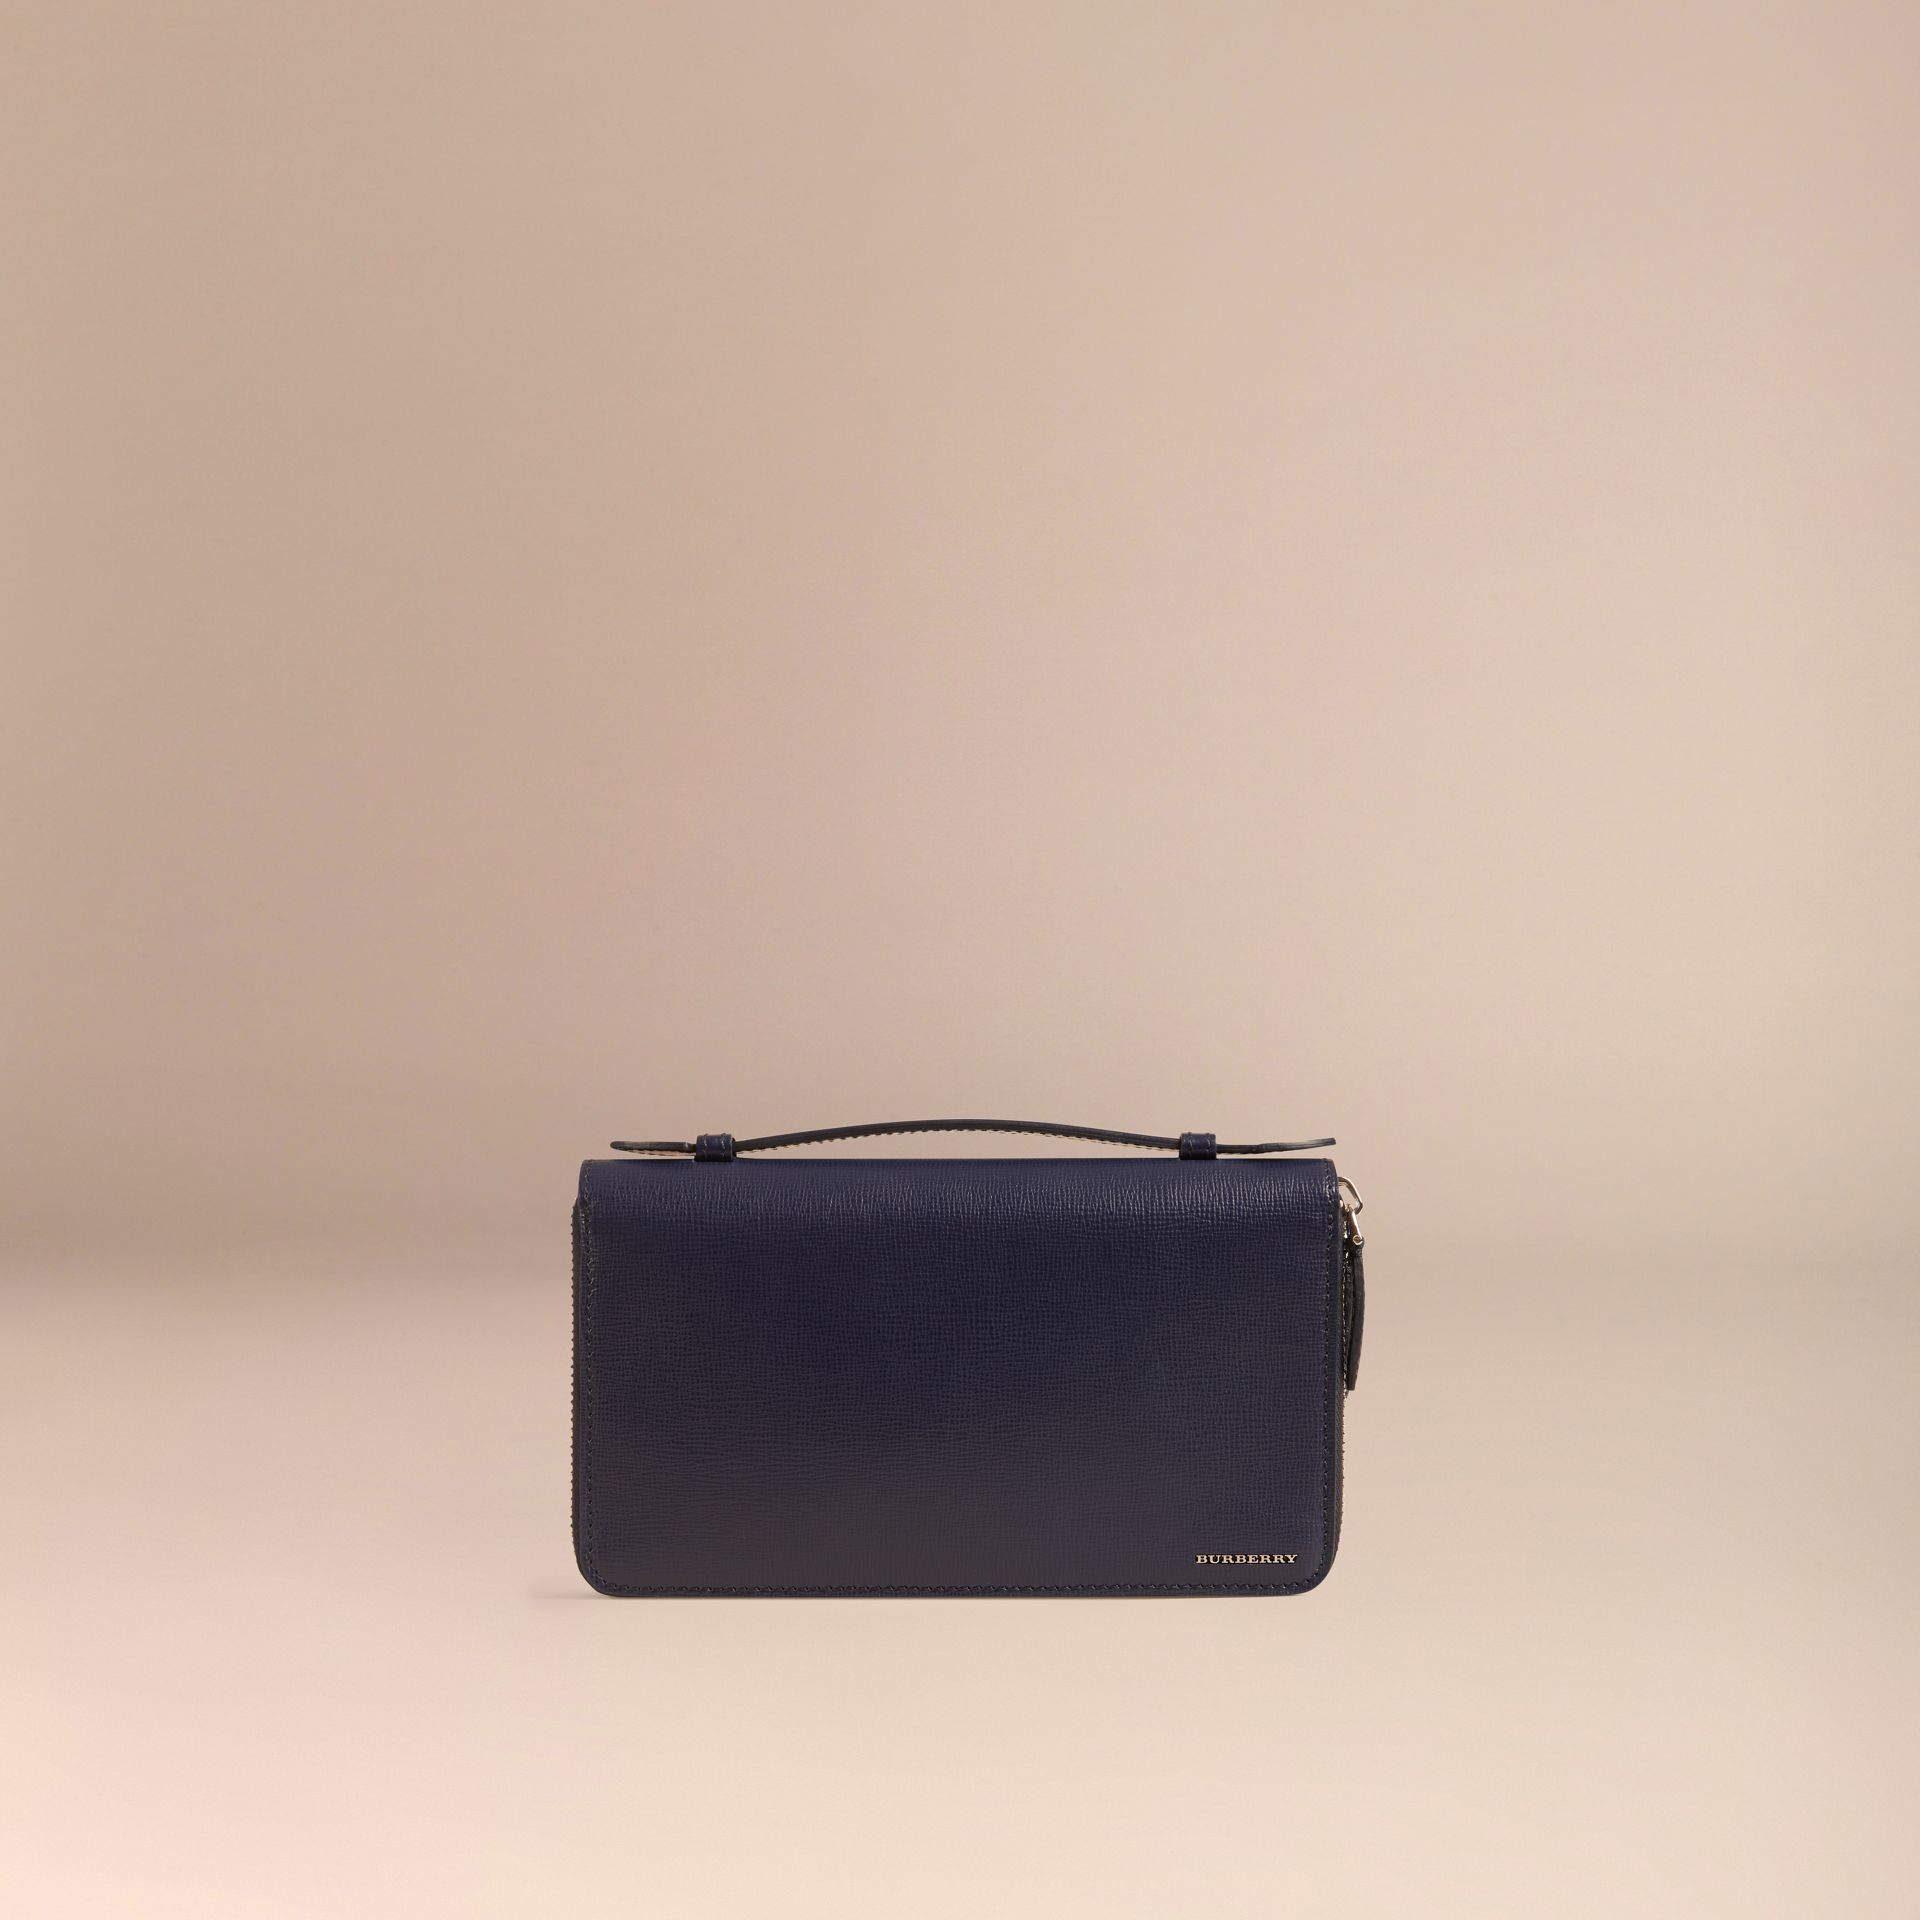 Dark navy London Leather Travel Wallet Dark Navy - gallery image 3